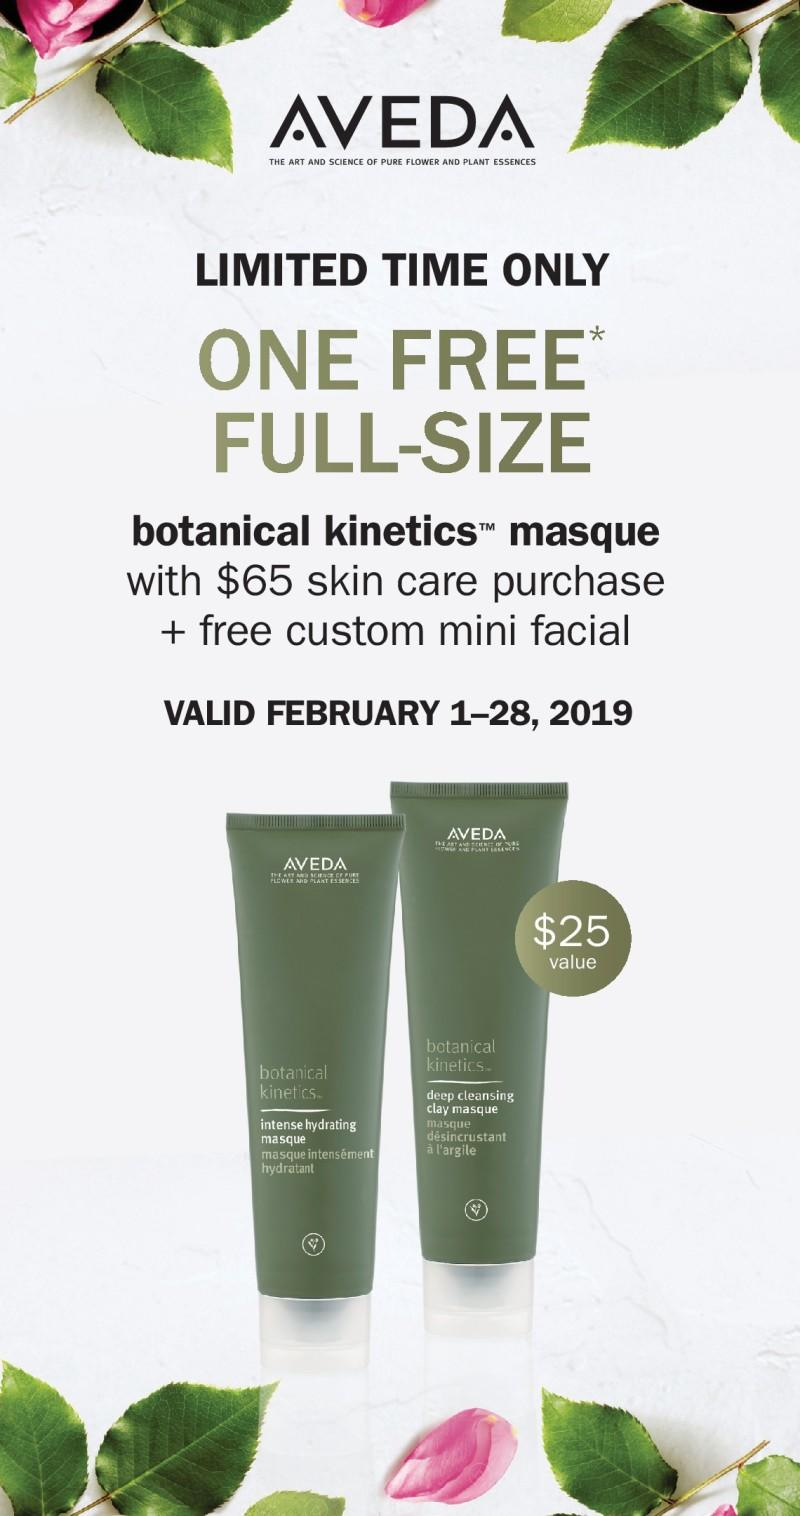 Free full-size with purchase from Aveda